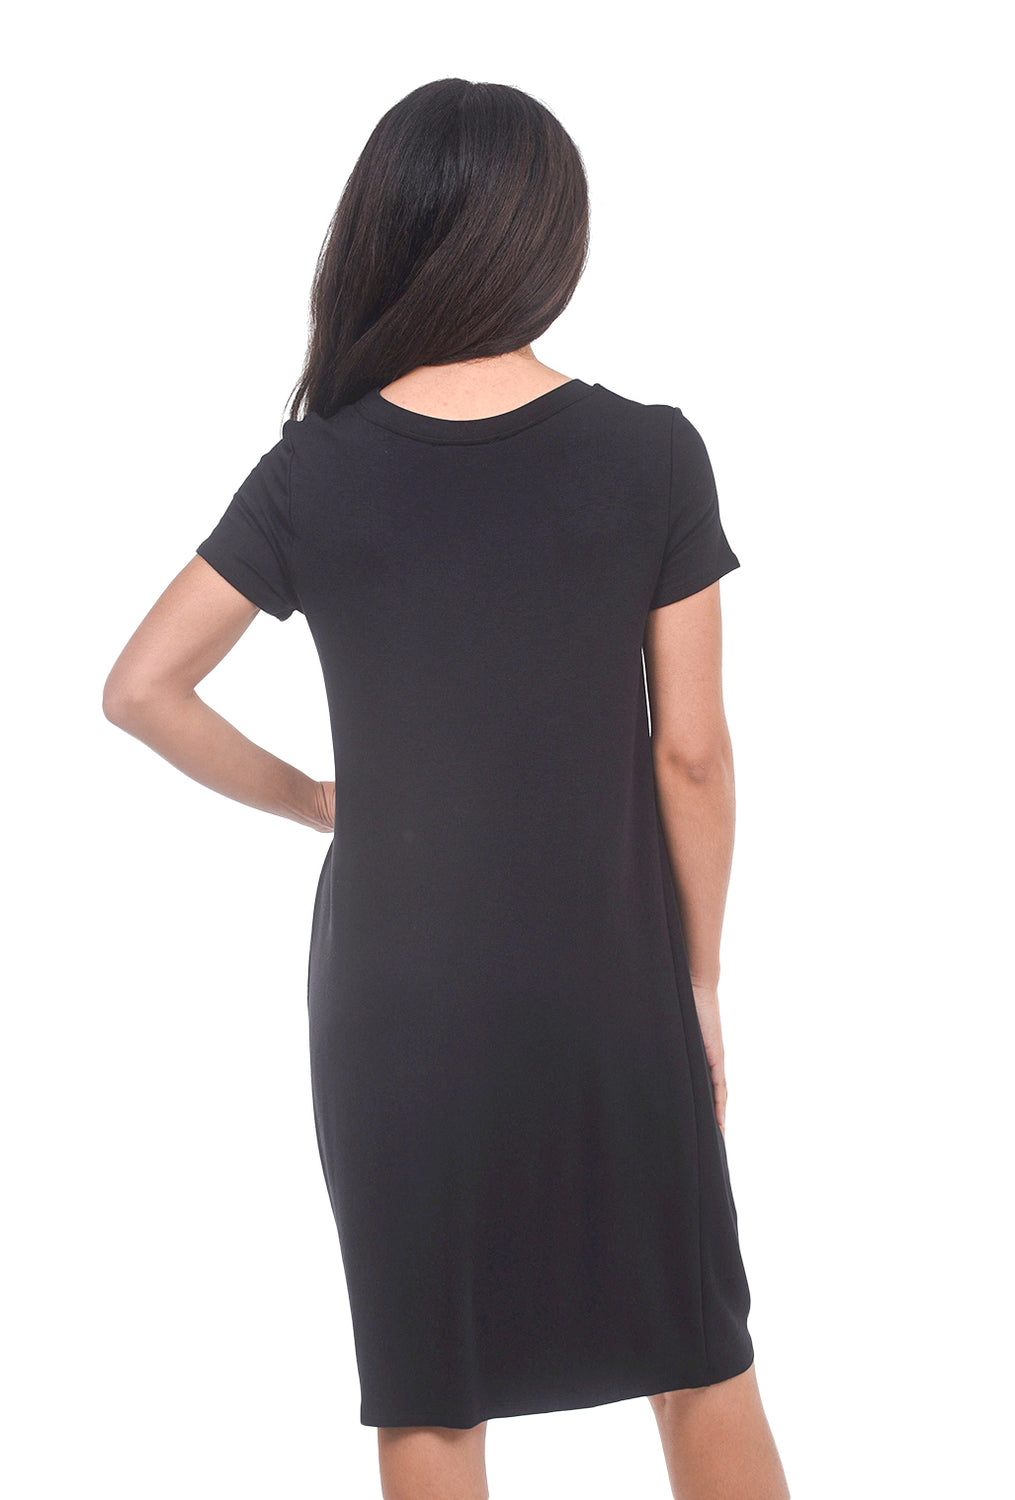 COA Twist Bottom T-Shirt Dress, Washed Black